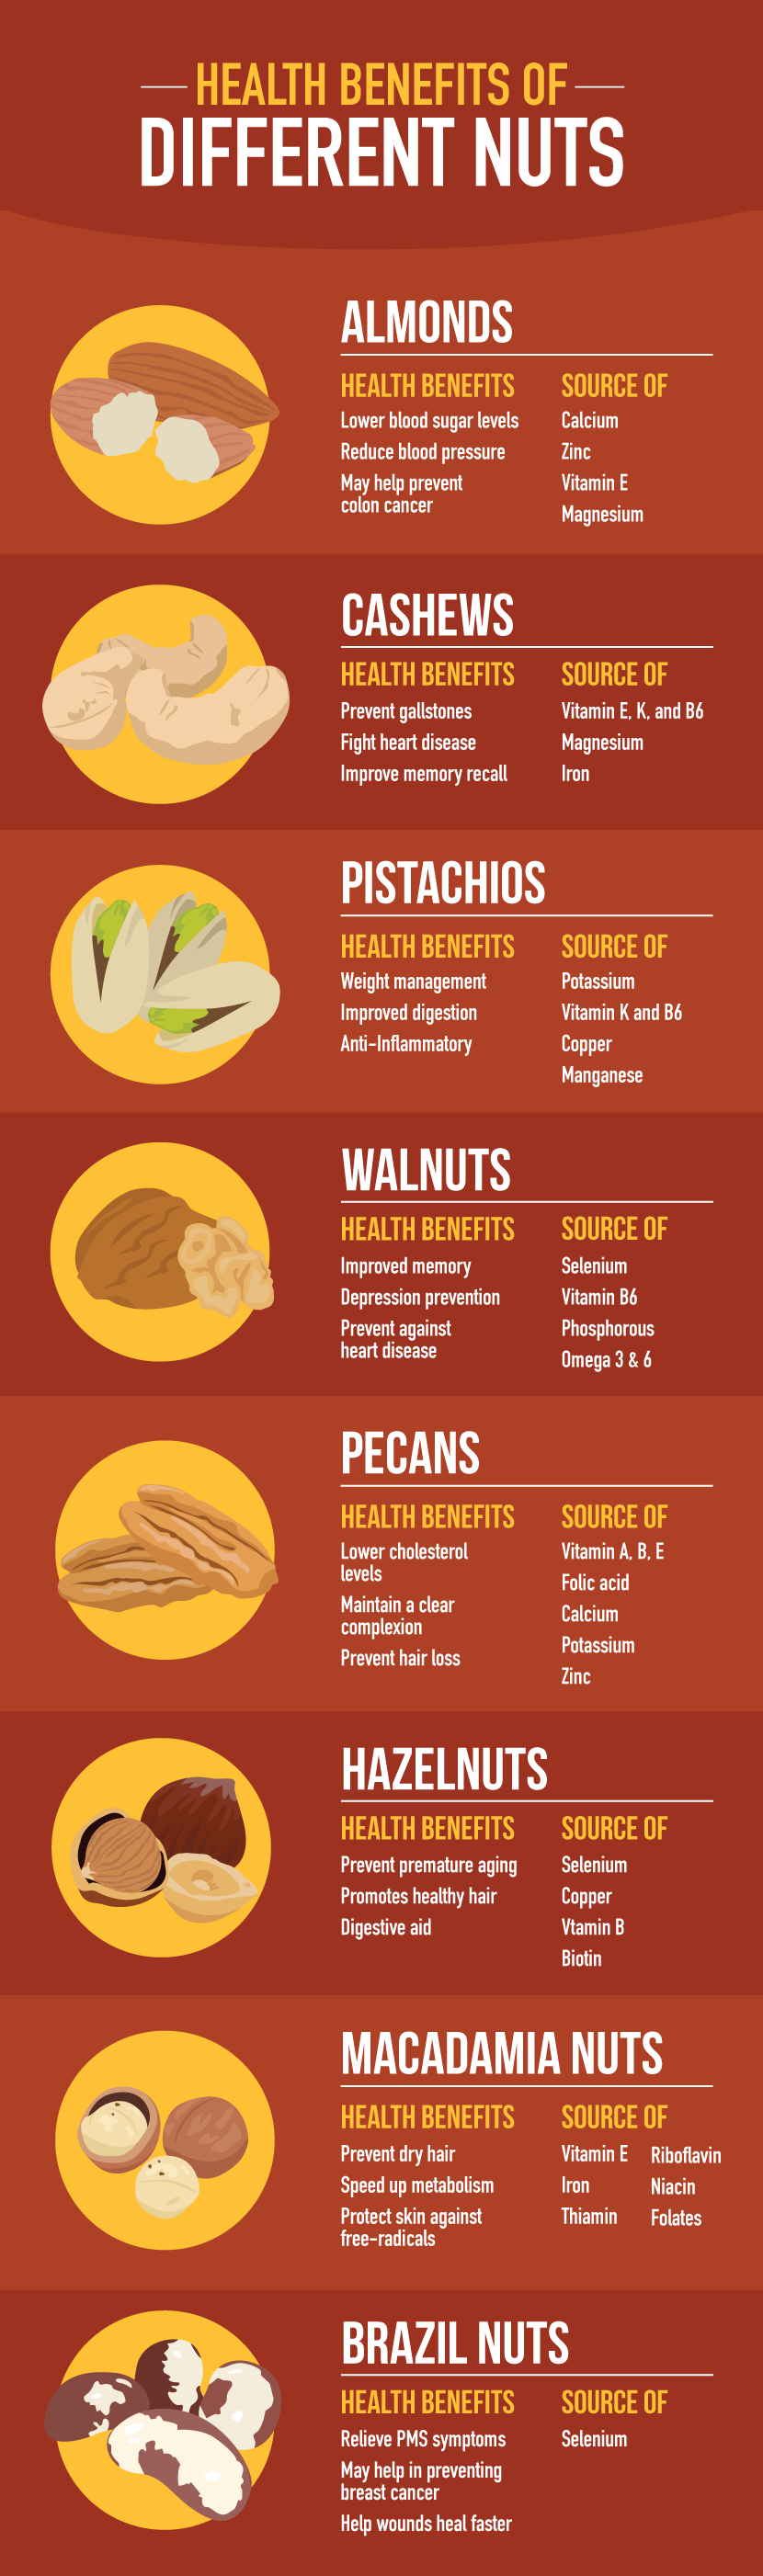 Here's What The Nuts You Snack On Actually Do For Your Body #walnutsnutrition